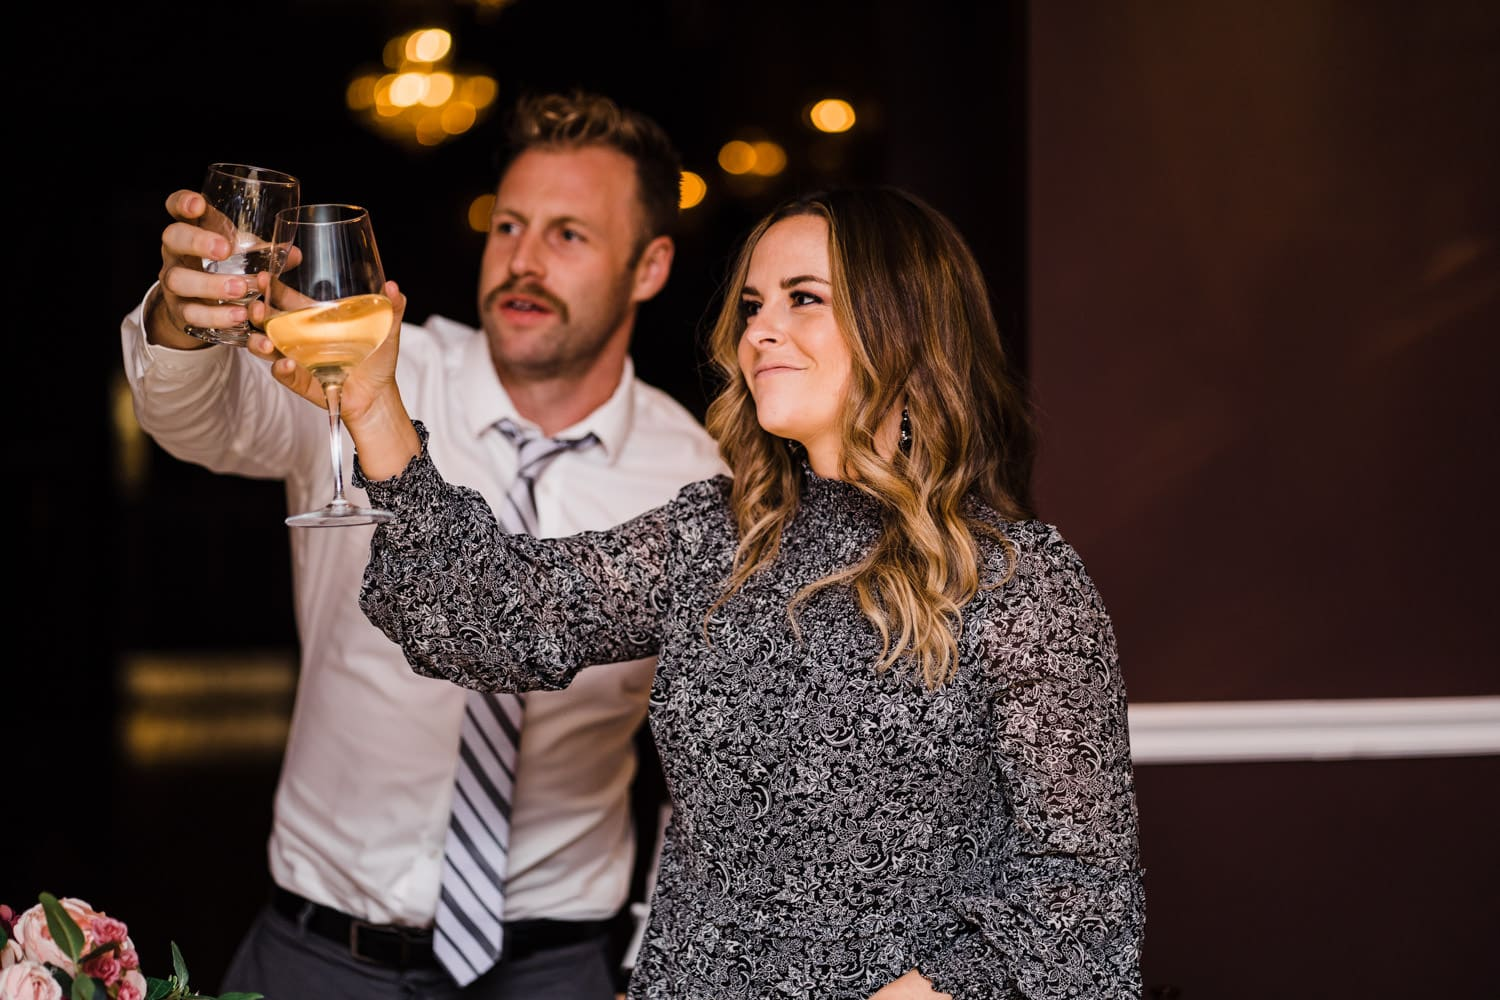 guests raise their glasses for a toast during wedding reception